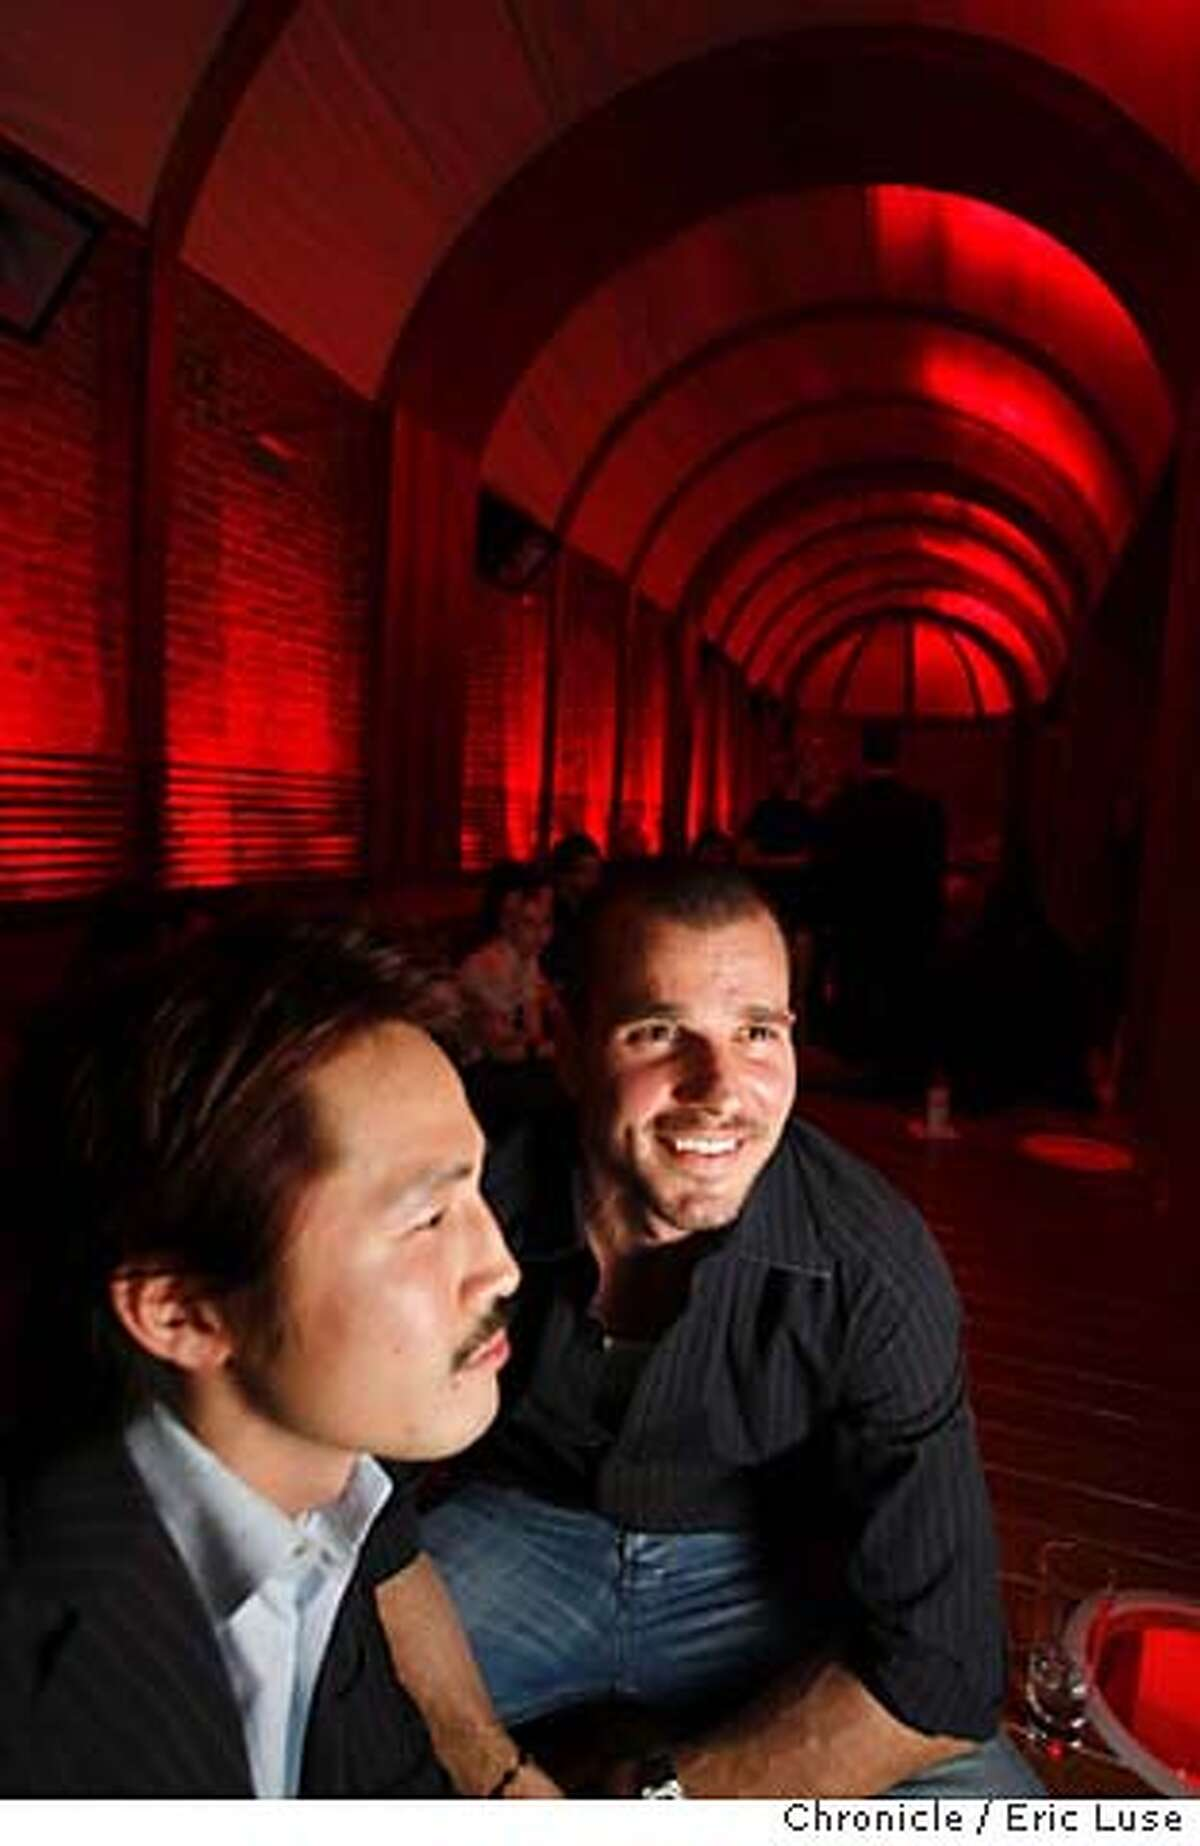 vessel04_0265_el.JPG Funwoo Hwang and Phillippe Rieser, owners, with the underground original brick wall under Stockton Street off to the left. Vessel, the new lounge bar underground across from Campton Place Hotel. Photographer: Eric Luse / The Chronicle names cq from source MANDATORY CREDIT FOR PHOTOG AND SF CHRONICLE/ -MAGS OUT